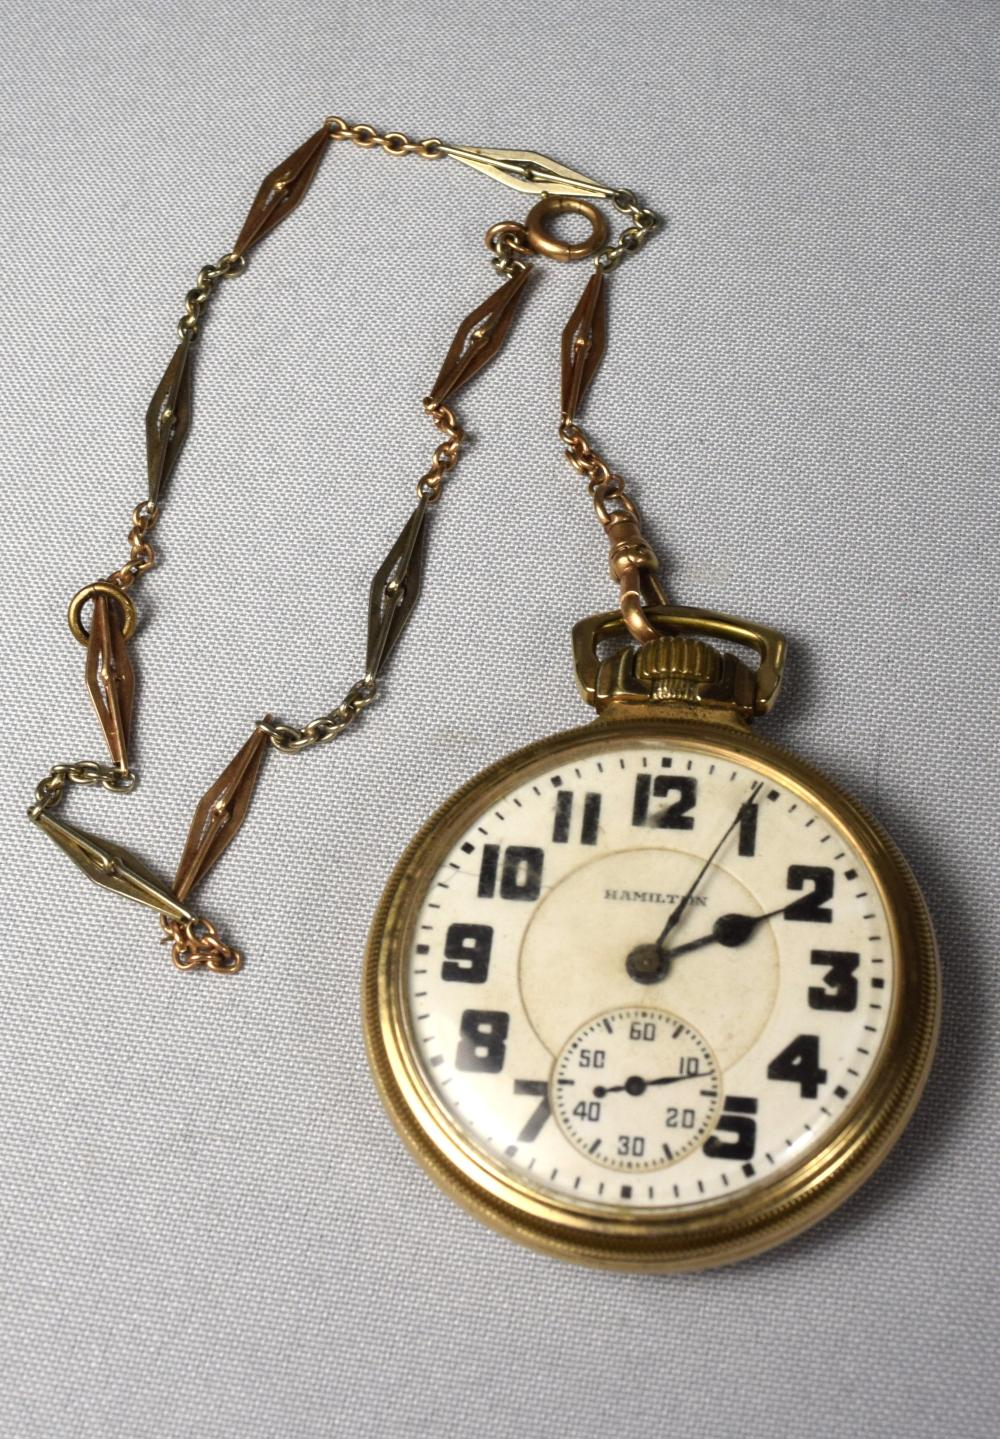 HAMILTON POCKET WATCH: